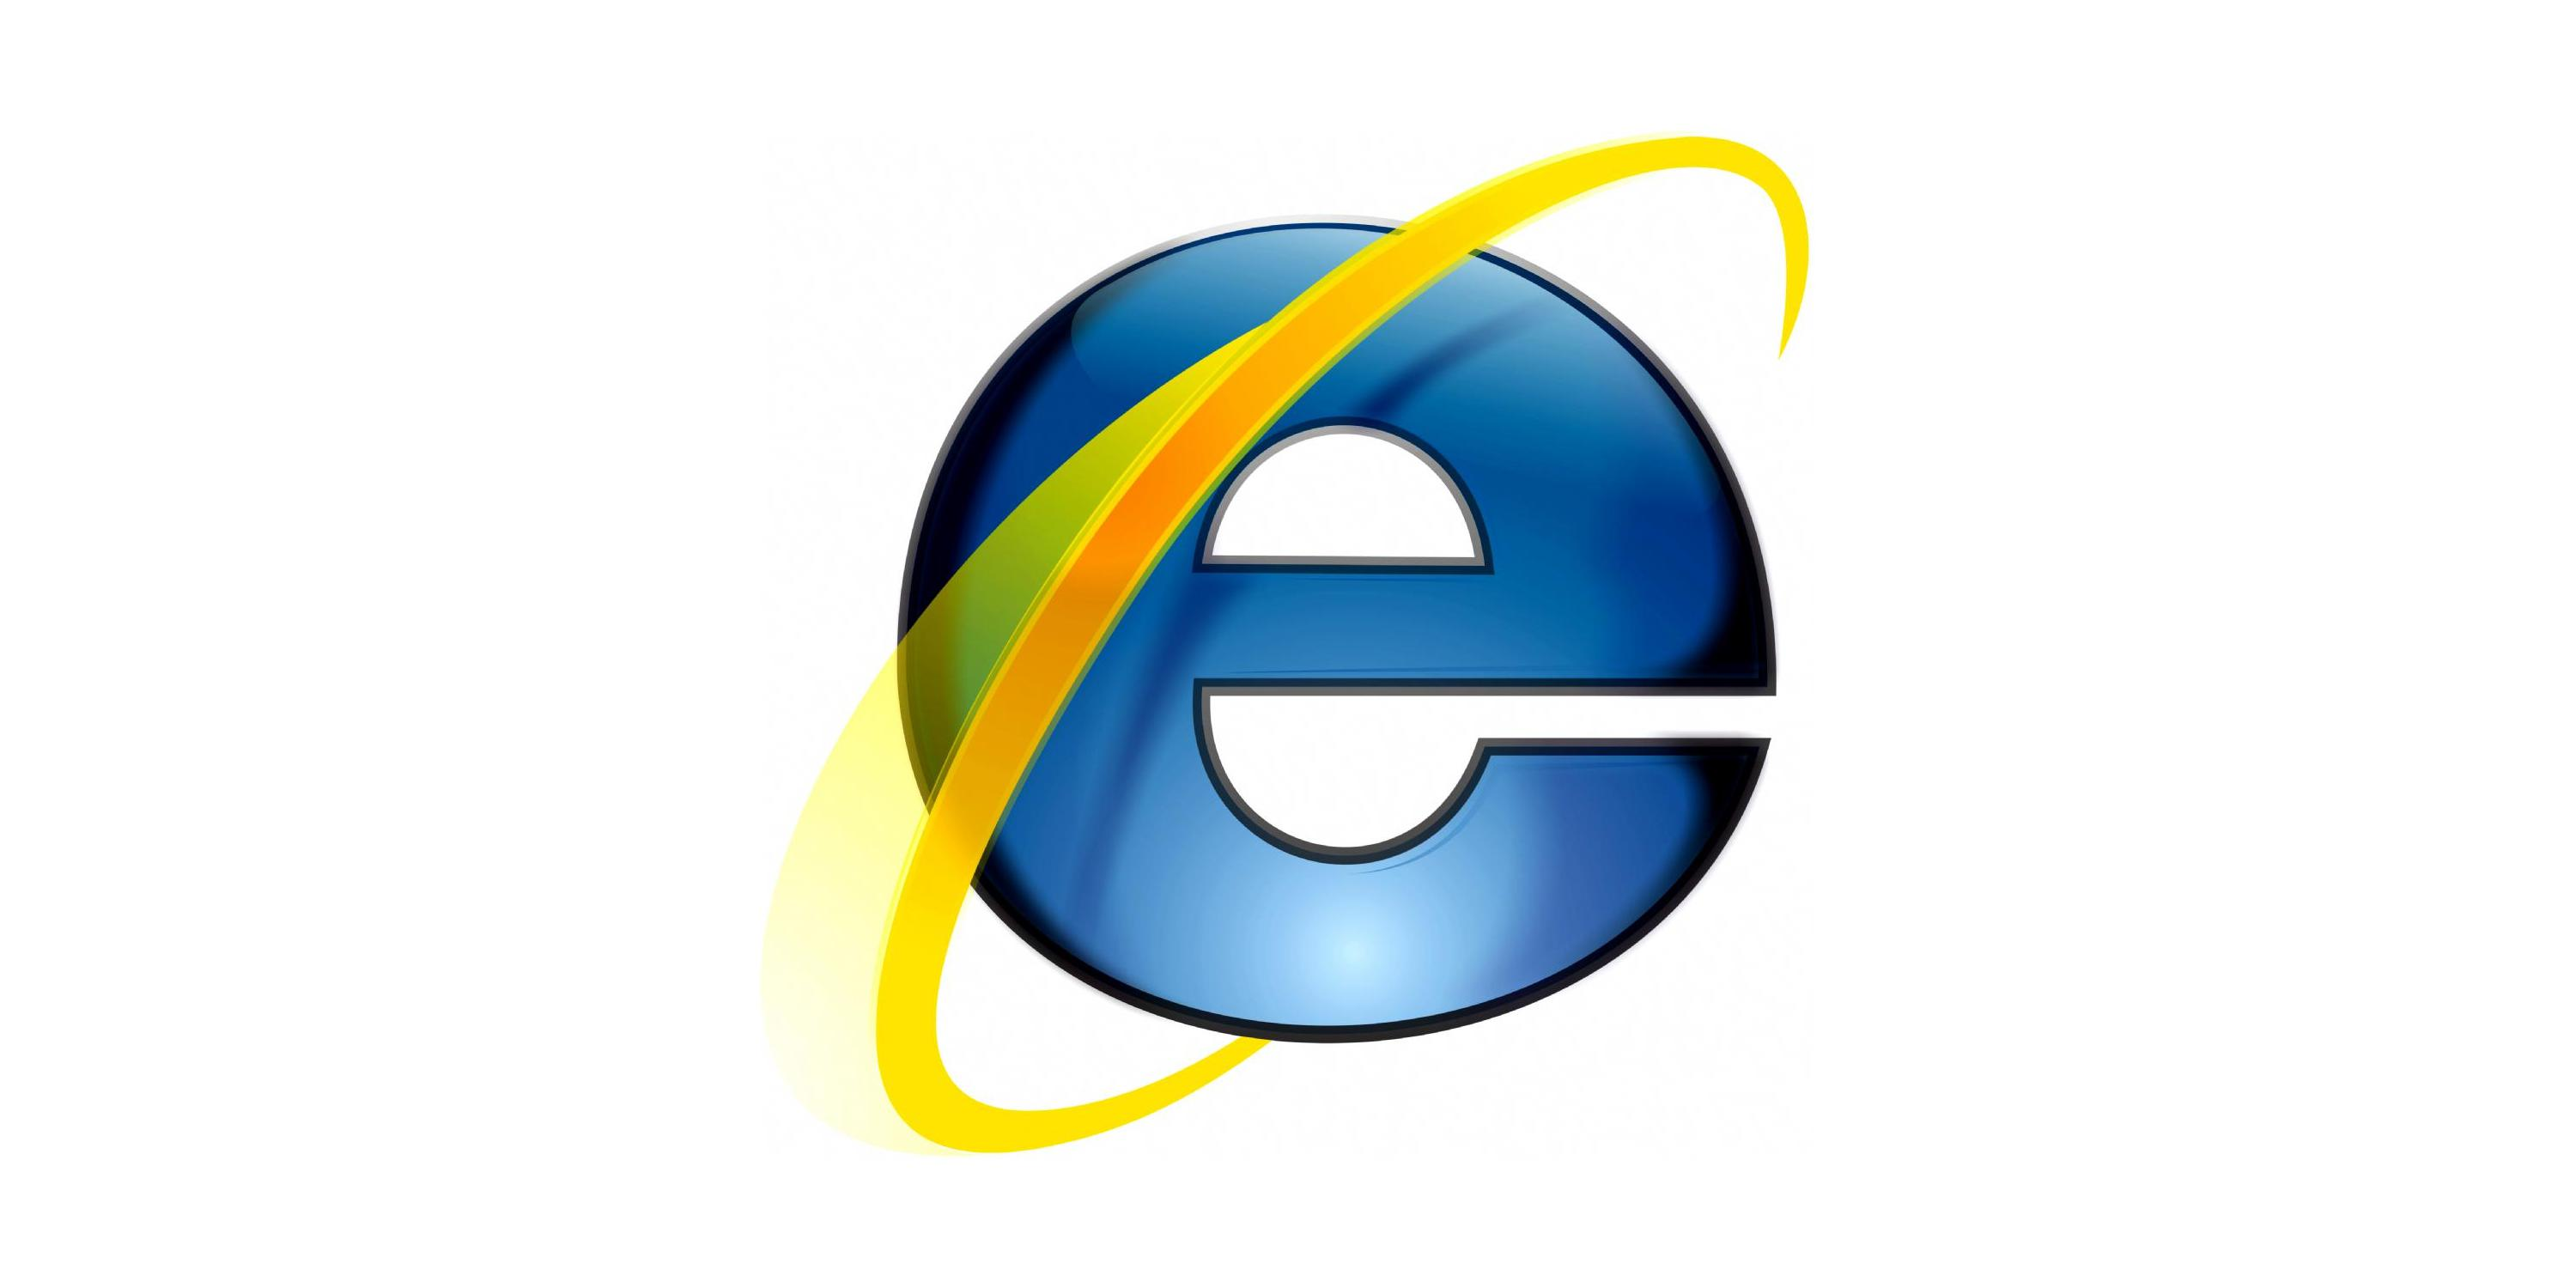 How To Enchance The Security In Internet Explorer - TechnoBezz